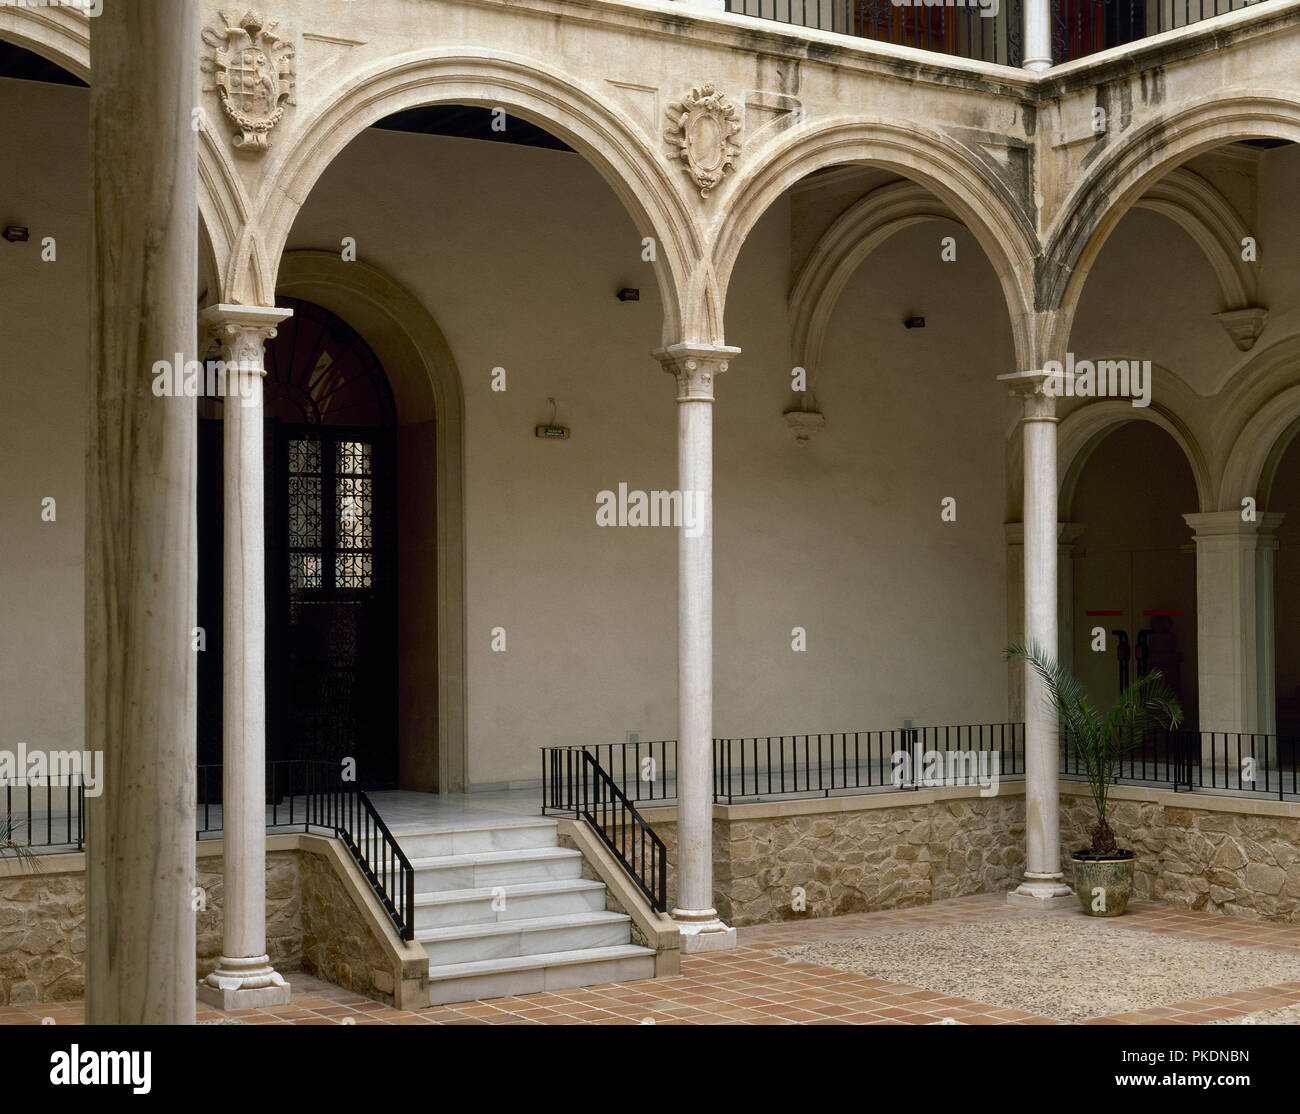 Spain. Murcia. San Esteban Palace. The architectonic complex was built as a college of the Company of Jesus, 1555-1569. Courtyard. - Stock Image